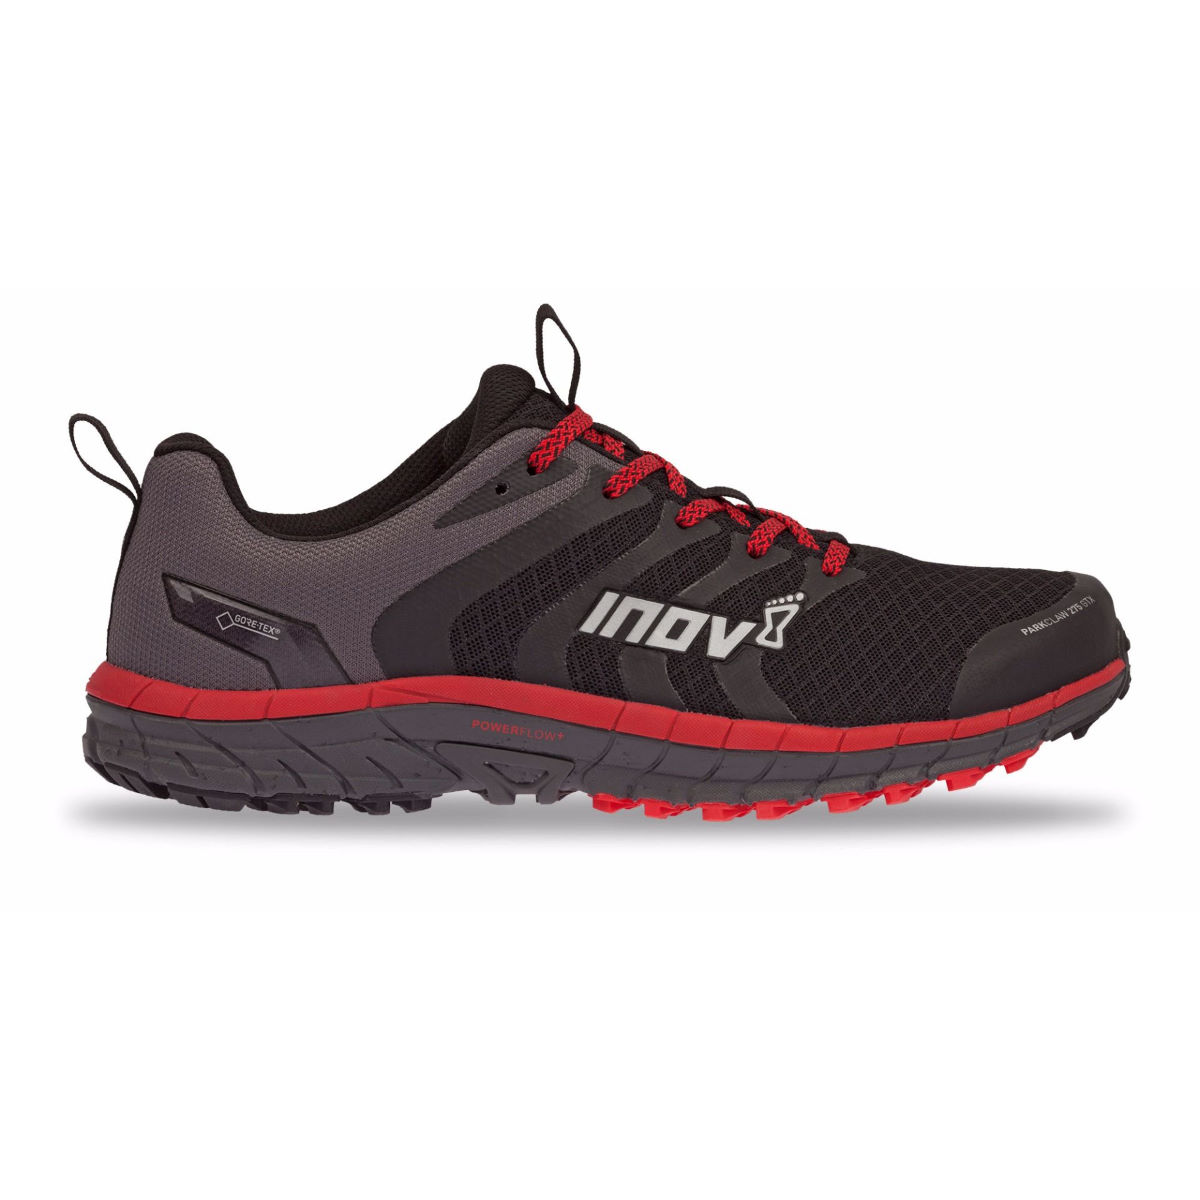 Chaussures Inov-8 Parkclaw 275 GTX - UK 11 BLACK/RED